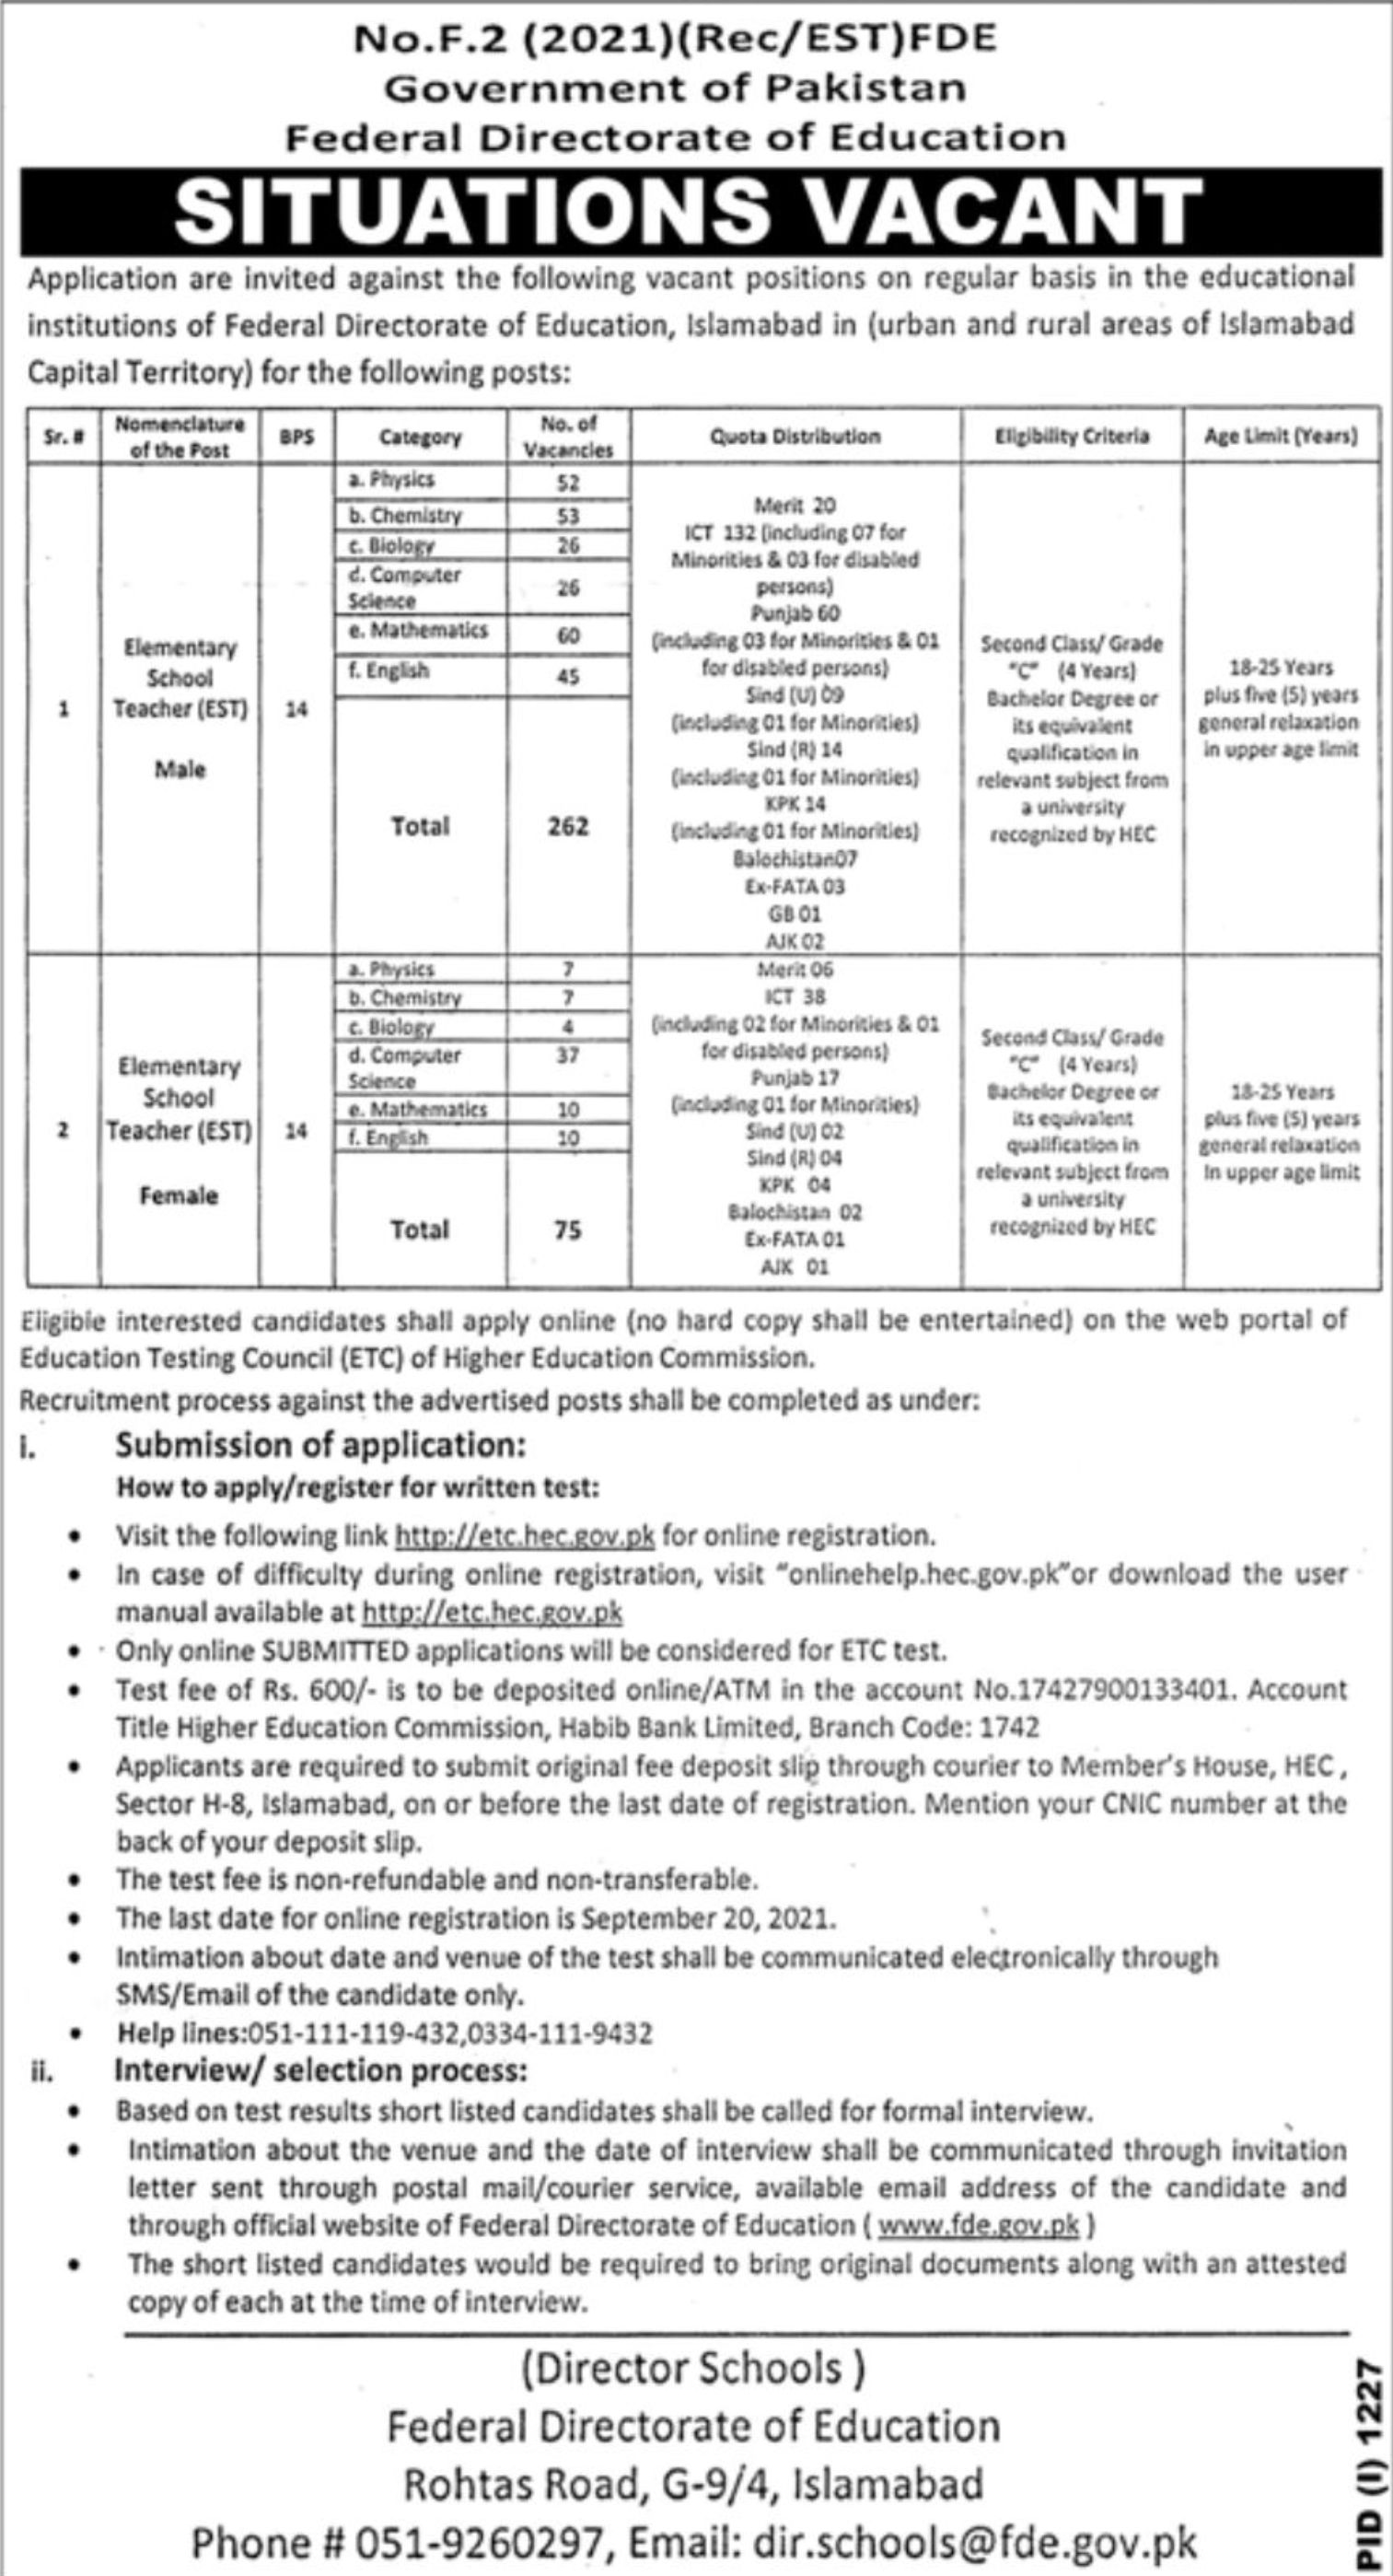 Government of Pakistan Federal Directorate of Education Vacancies 2021 3